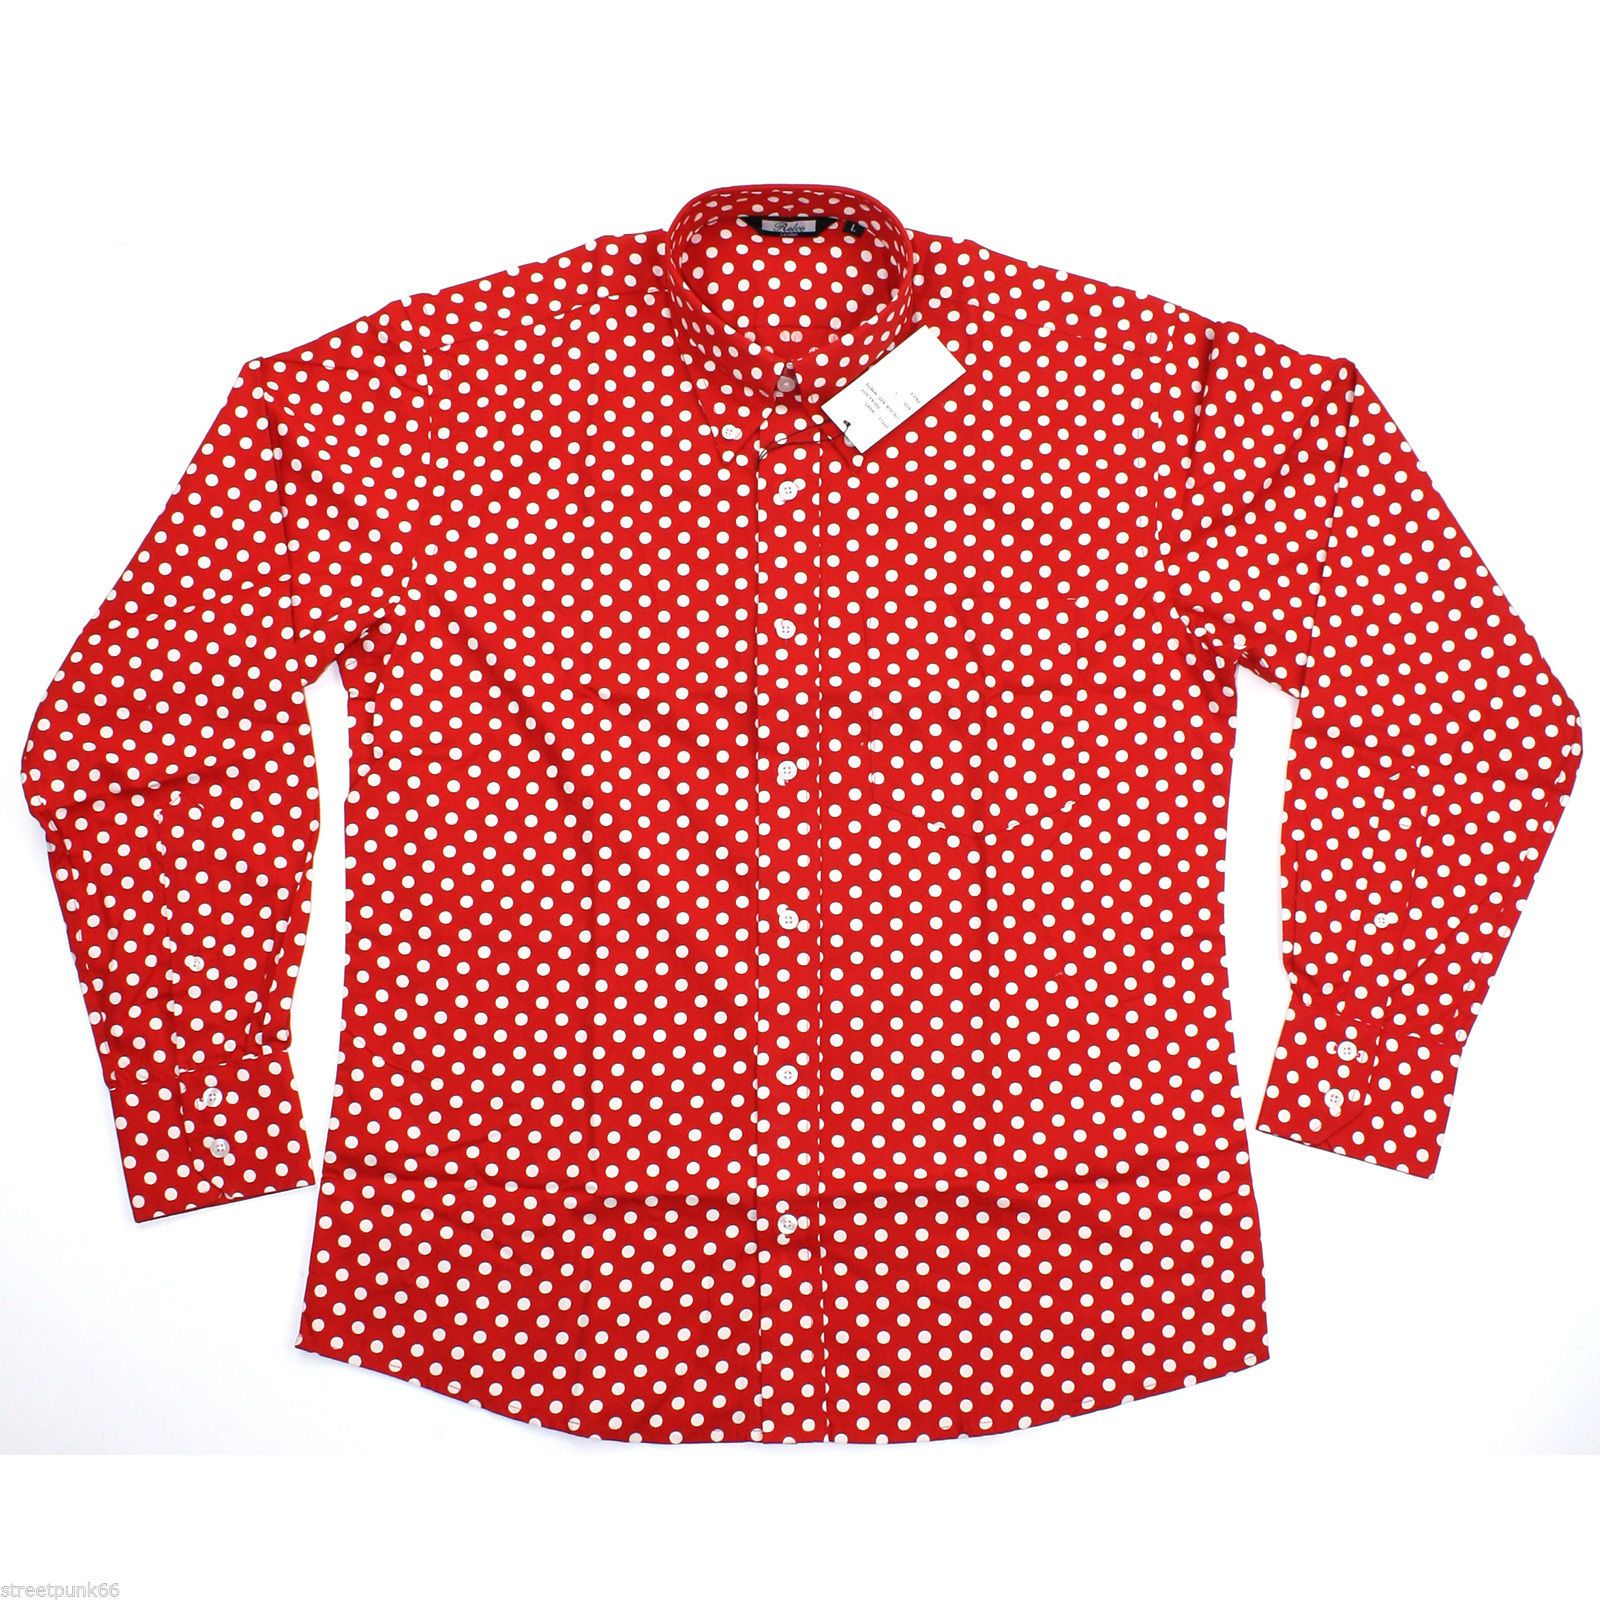 Free shipping BOTH ways on polka dot shirts, from our vast selection of styles. Fast delivery, and 24/7/ real-person service with a smile. Click or call